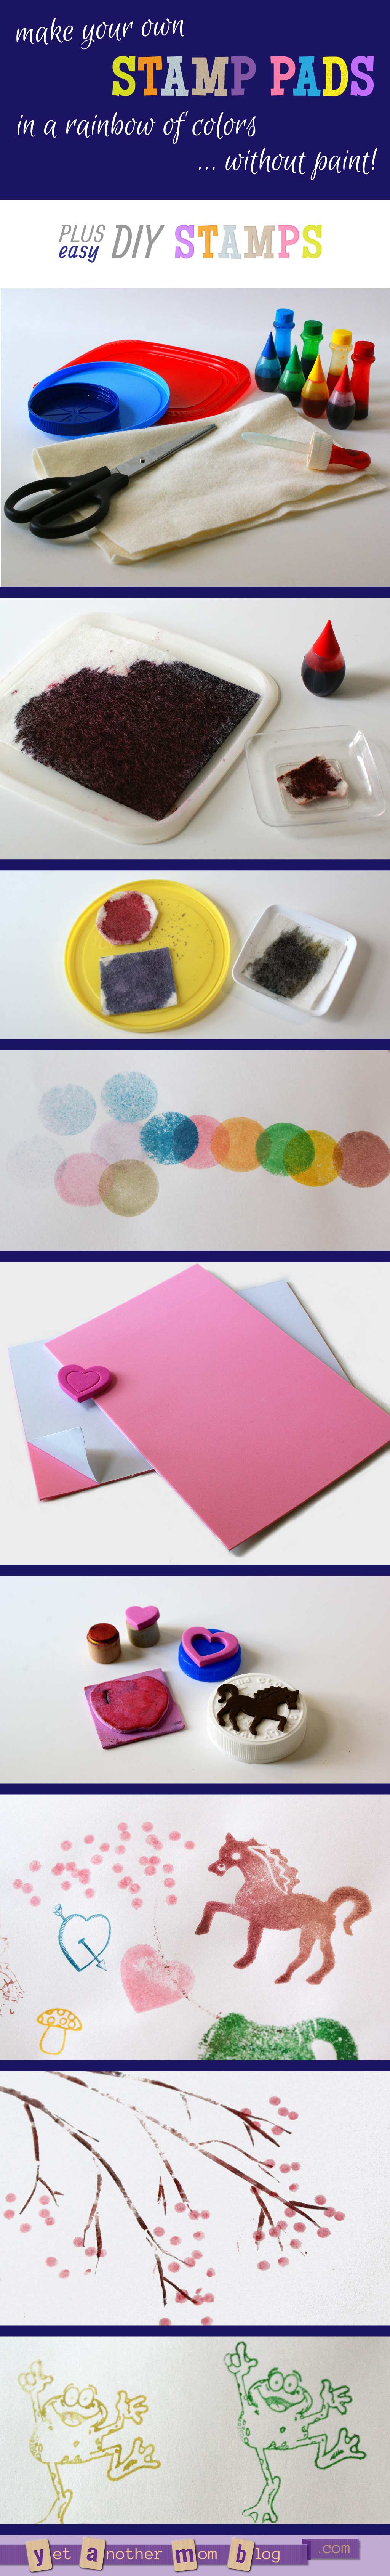 DIY Stamp Pads and Foam Stamps